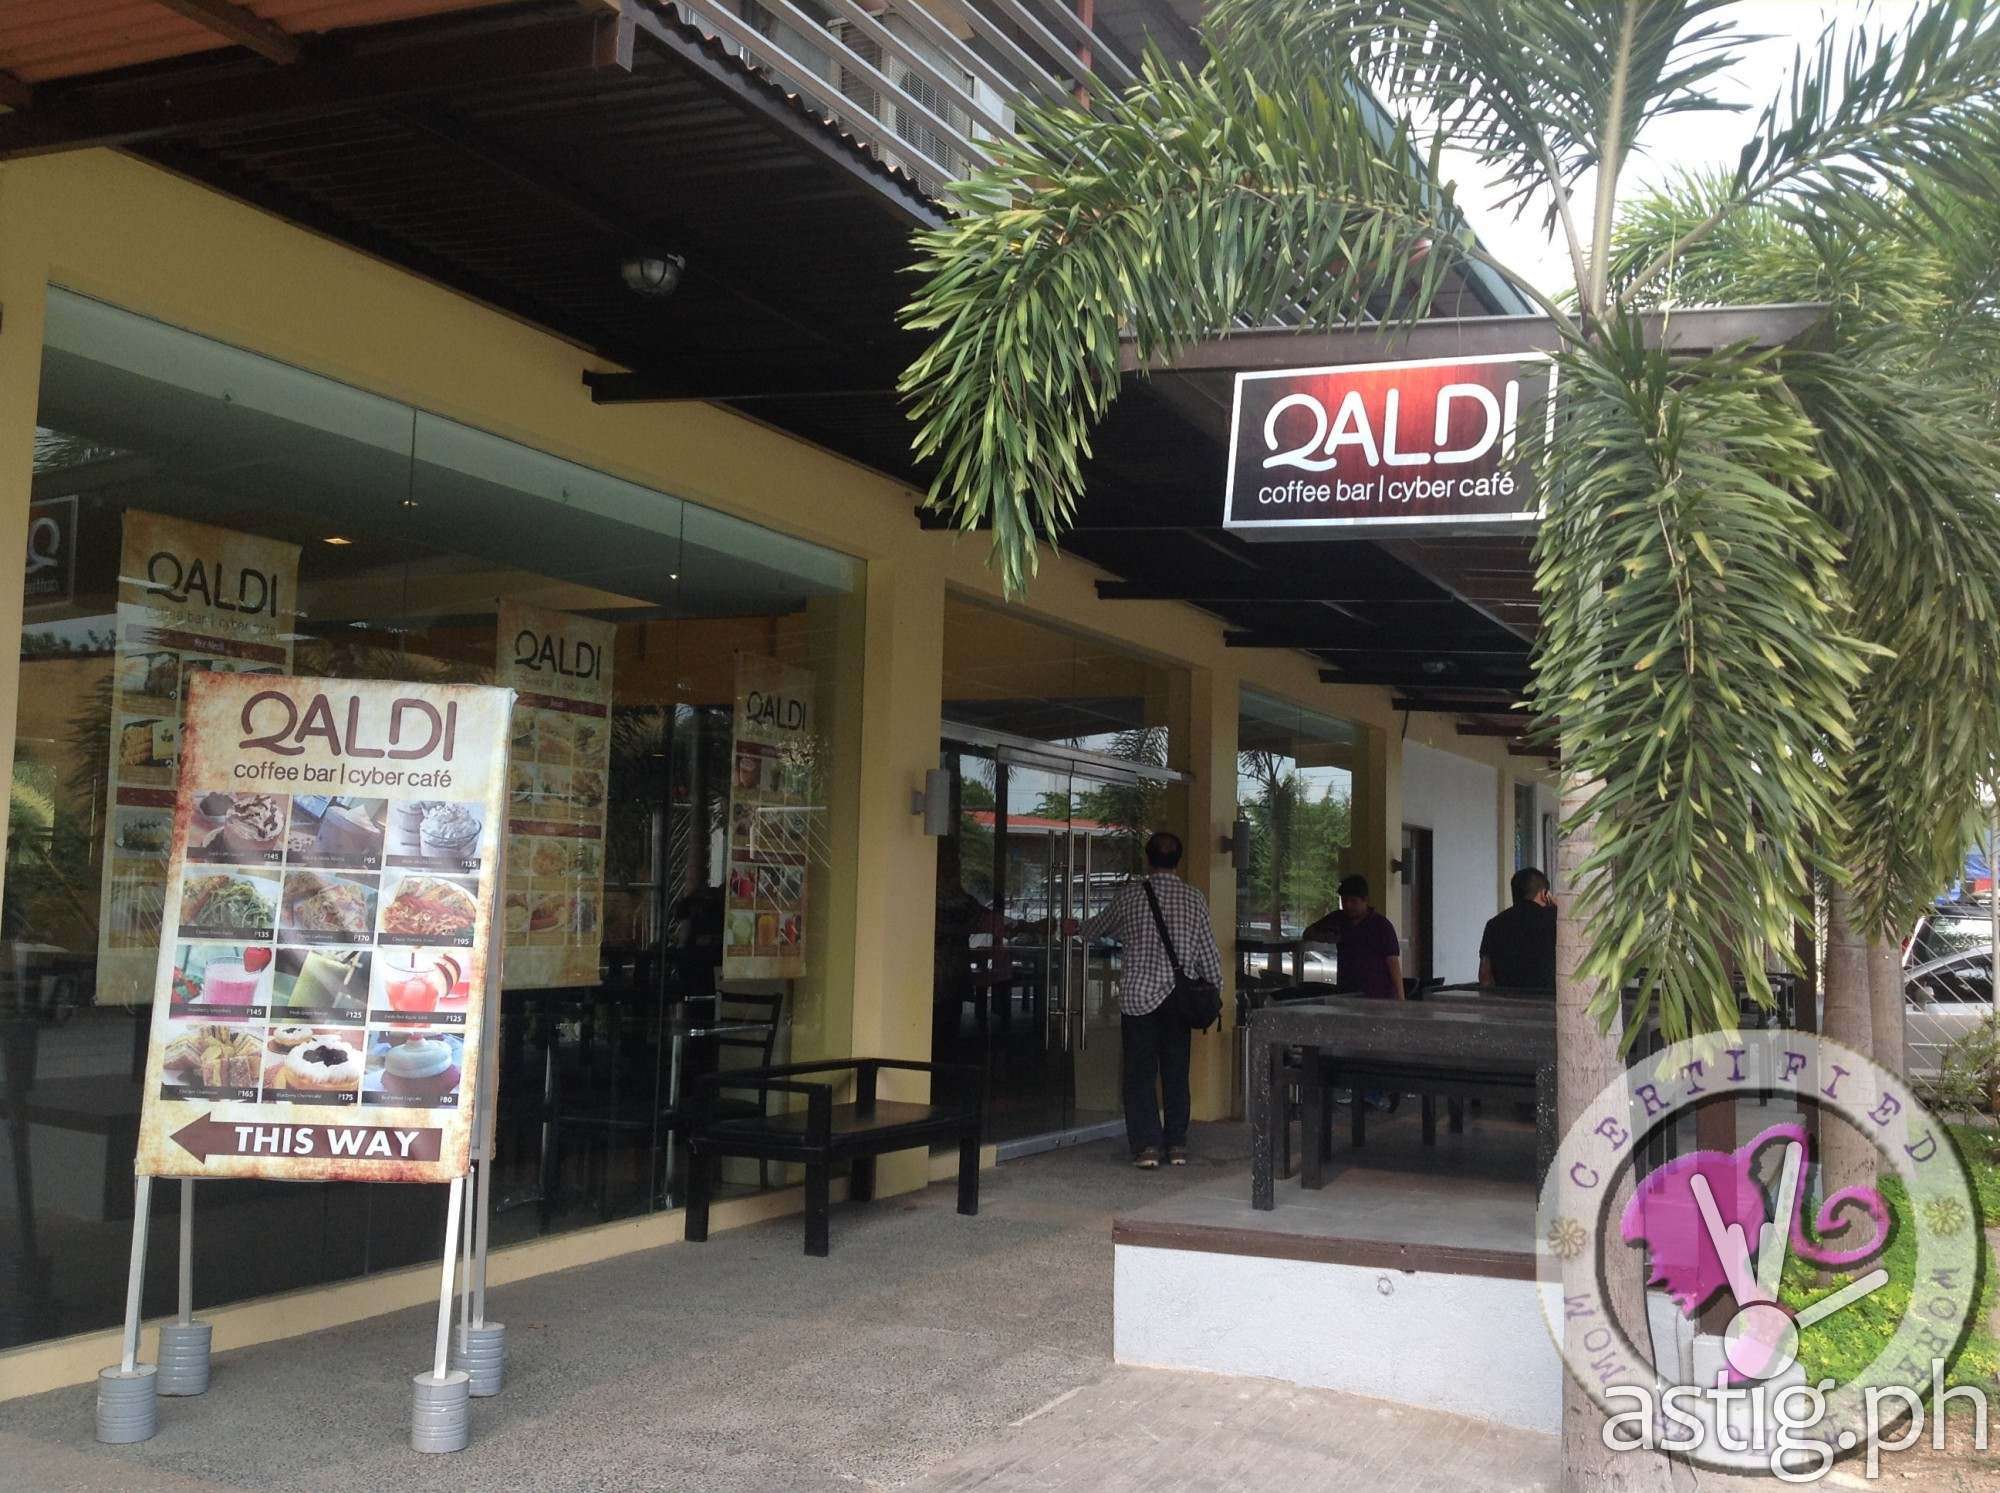 View from outside the Qaldi's Cafe